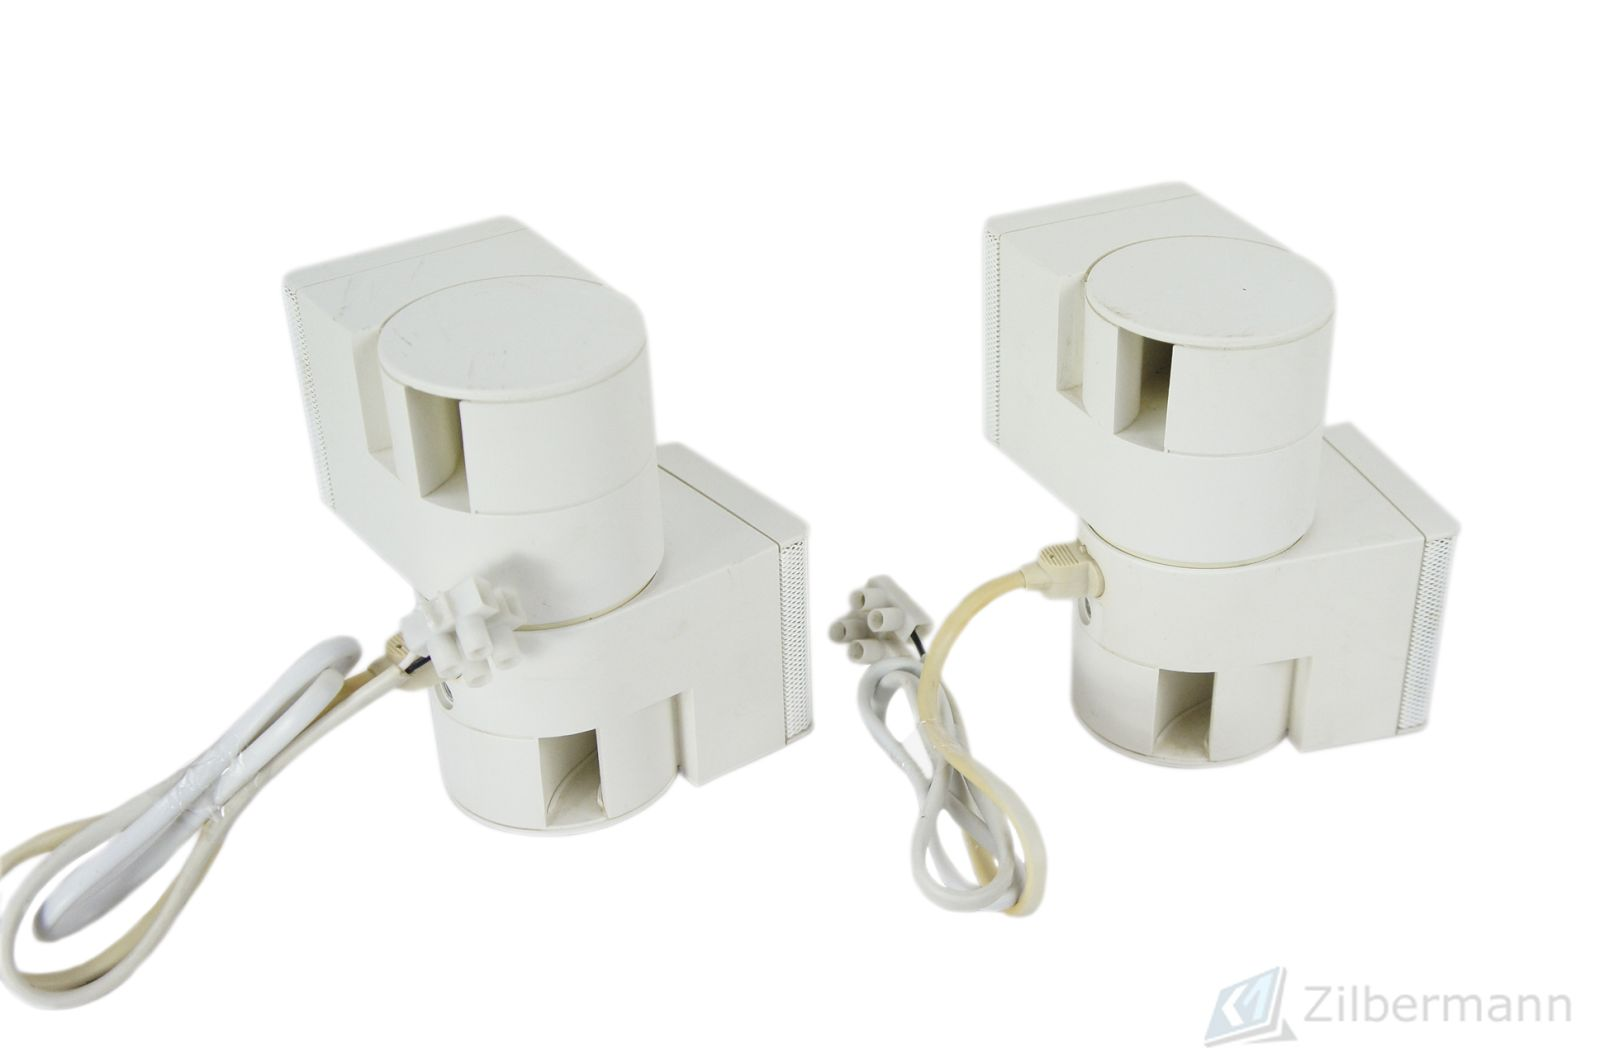 2x_Bose_Jewel_Cubes_Boxen_Satelliten_mit_Adapter_Weiss_04